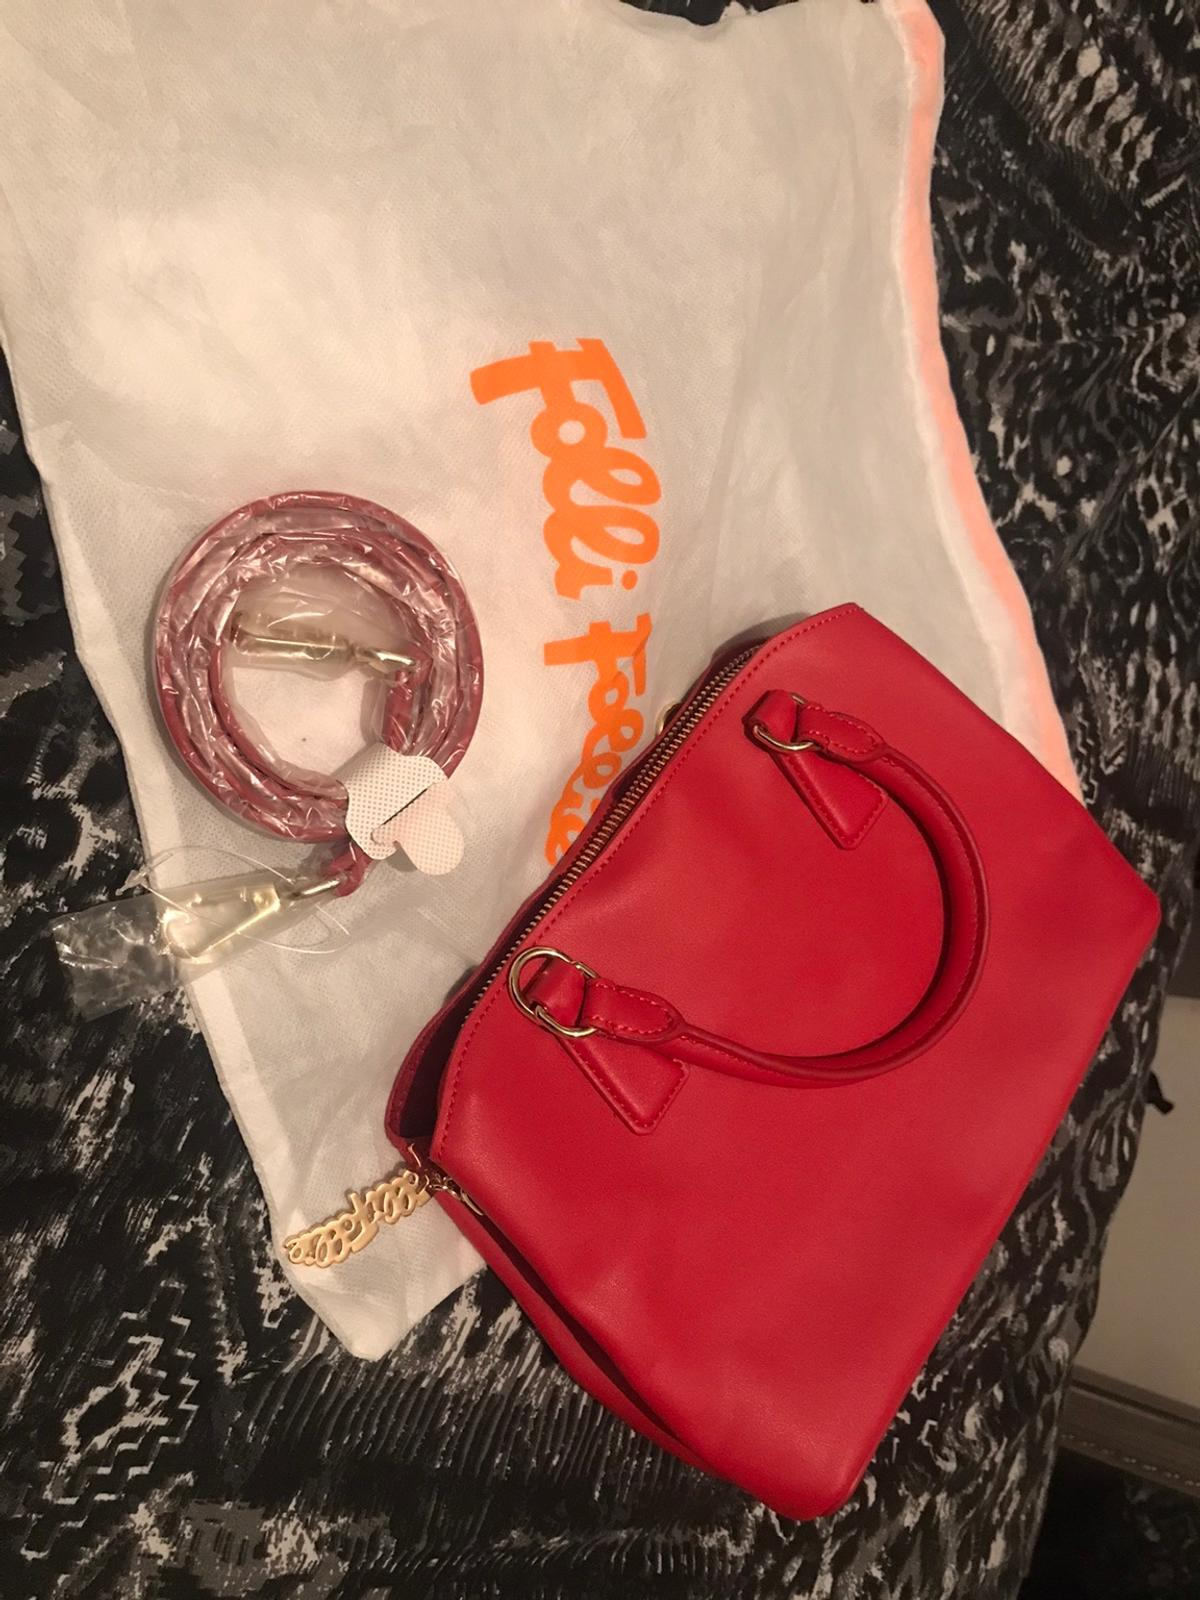 Here I have a brand new genuine folli follie bag from Selfridges with strap still in wrapping also comes with original bag. Never used.unwanted gift. HD2. Red. RRP £125. Length 25cm, Width 10cm, Height 17.5cm)